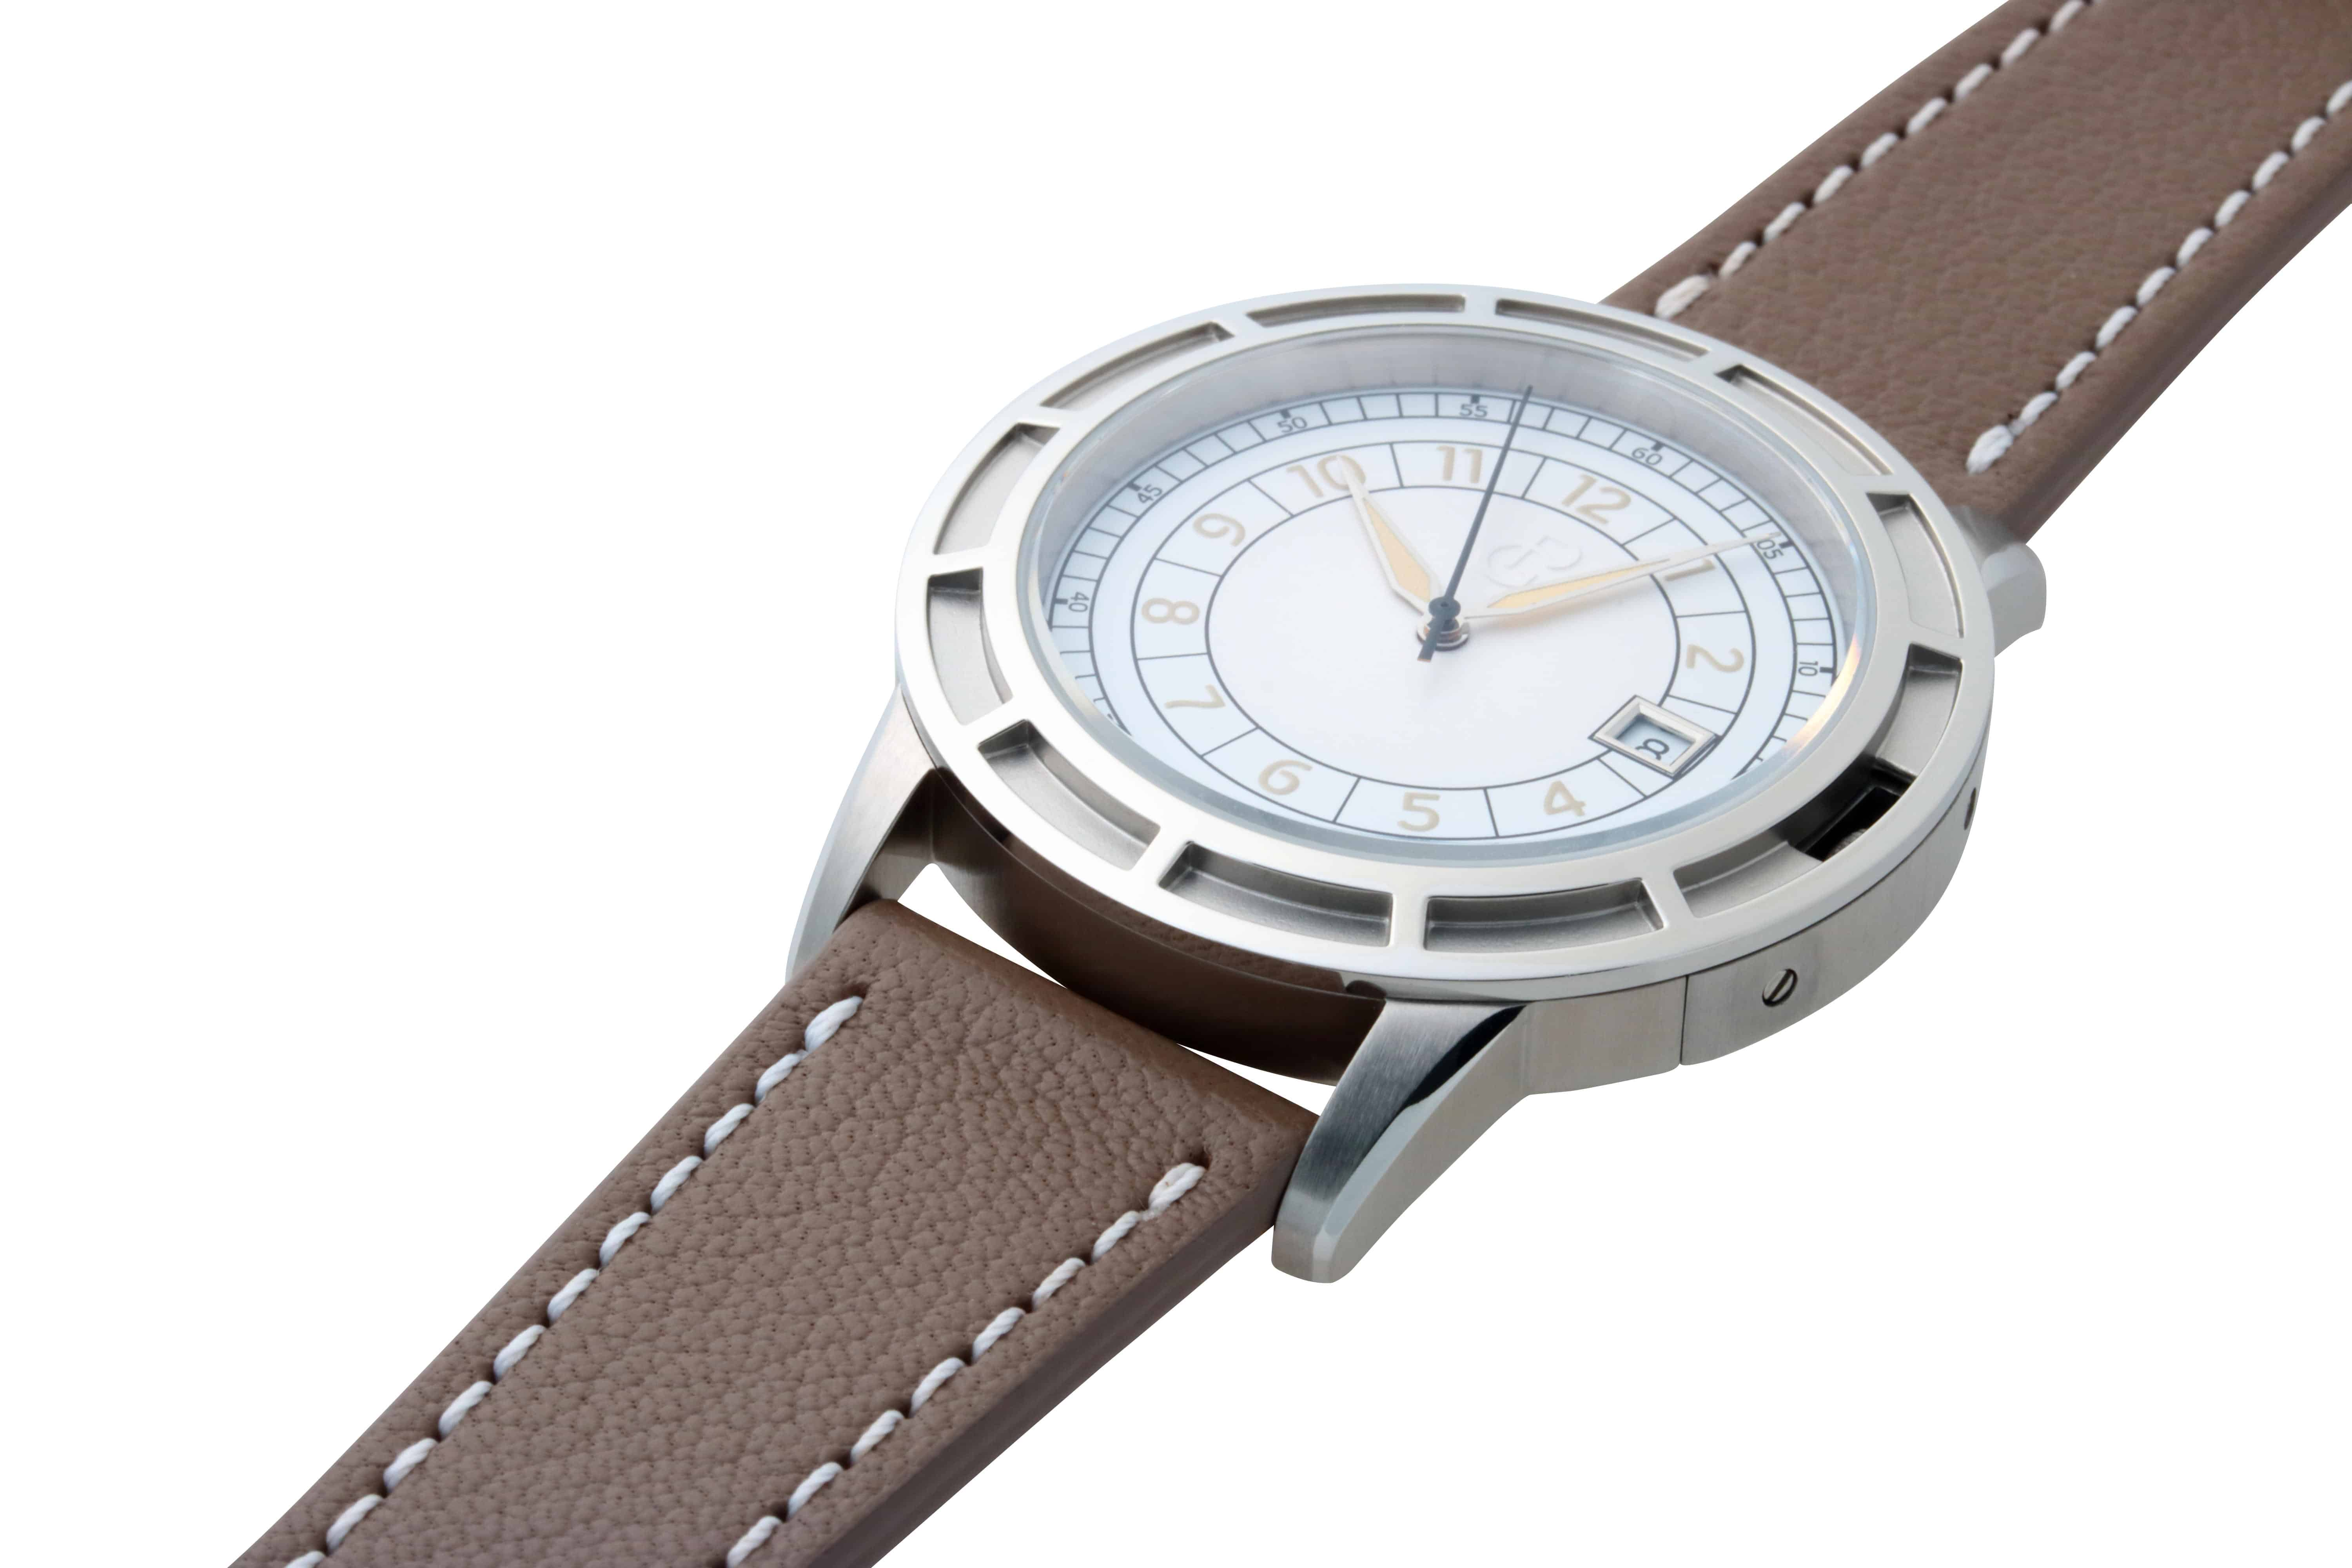 Pierre Gaston Watches Announces A New Authorized Watch Brand Distributor